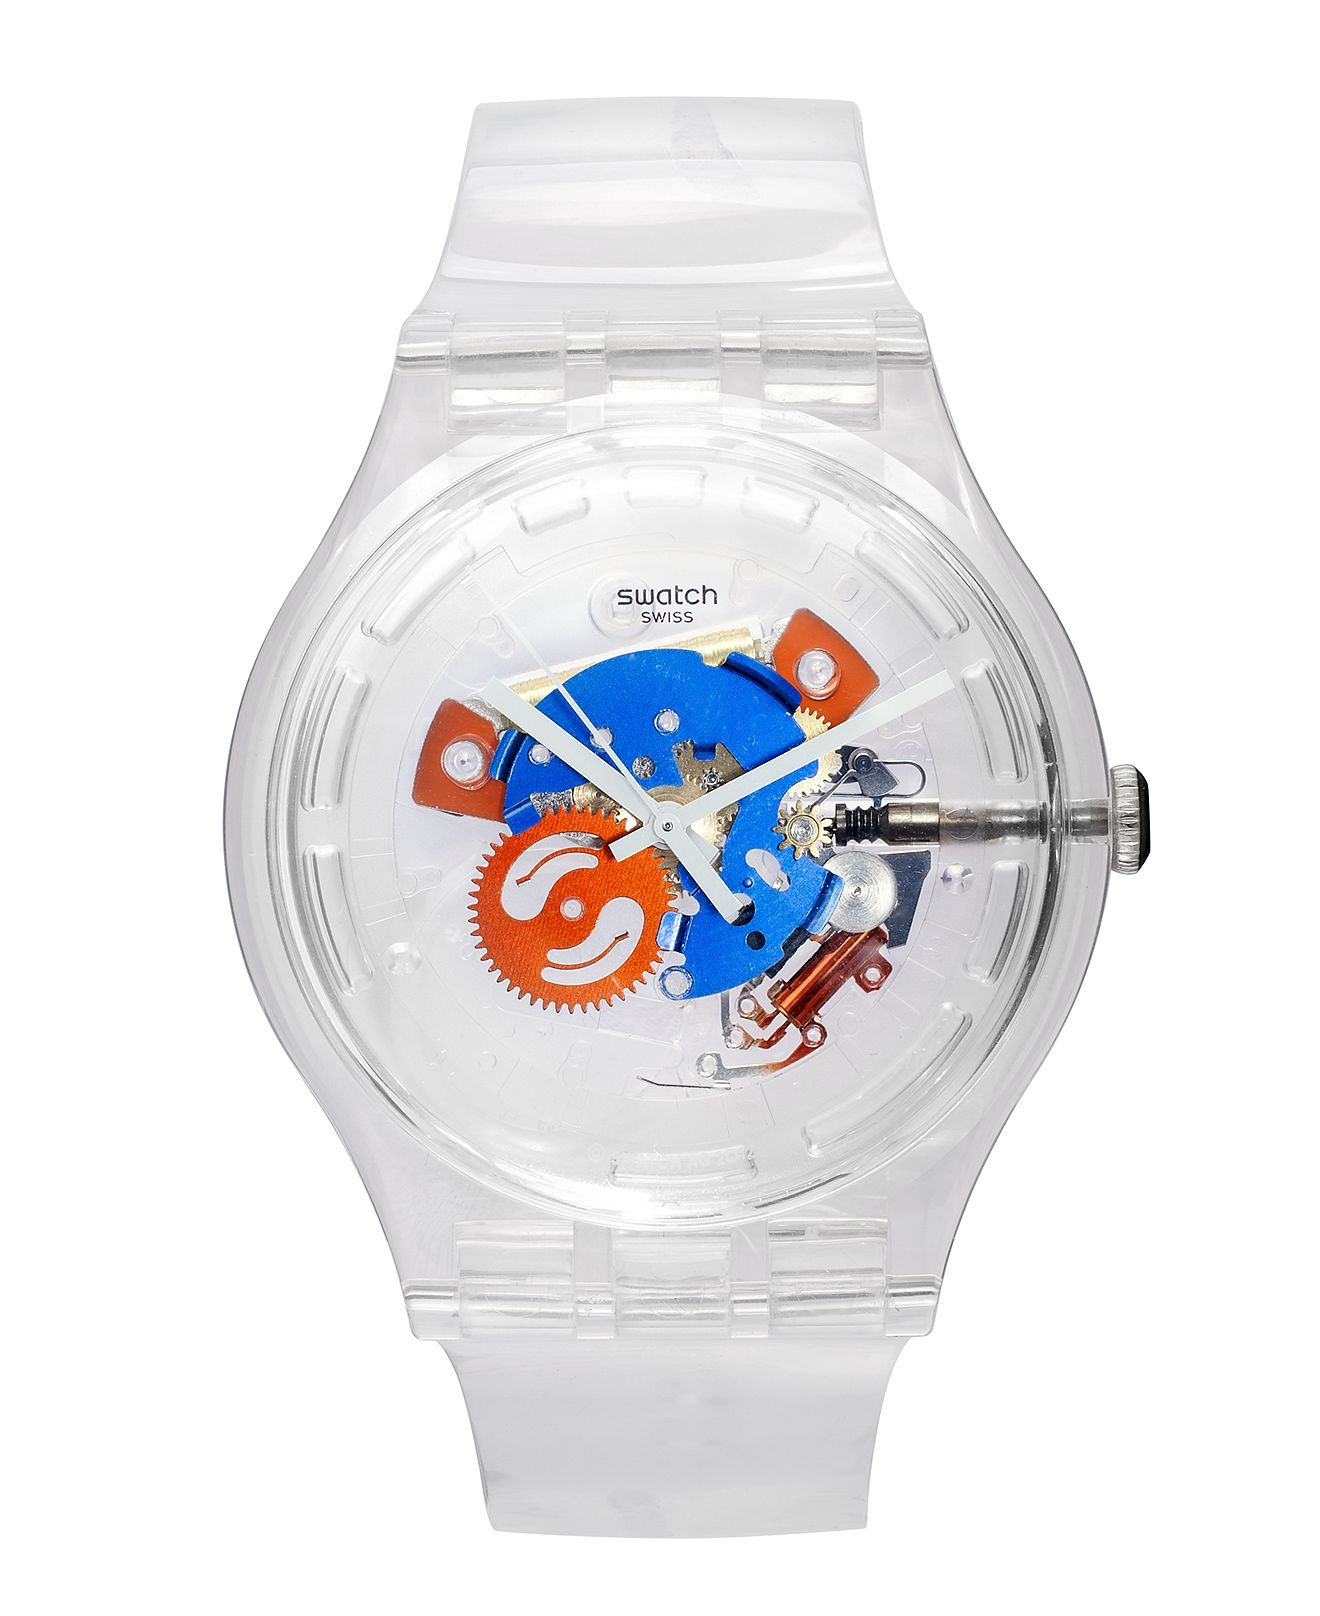 bargains motion branded watches swatch hayek watch puzzle switch product